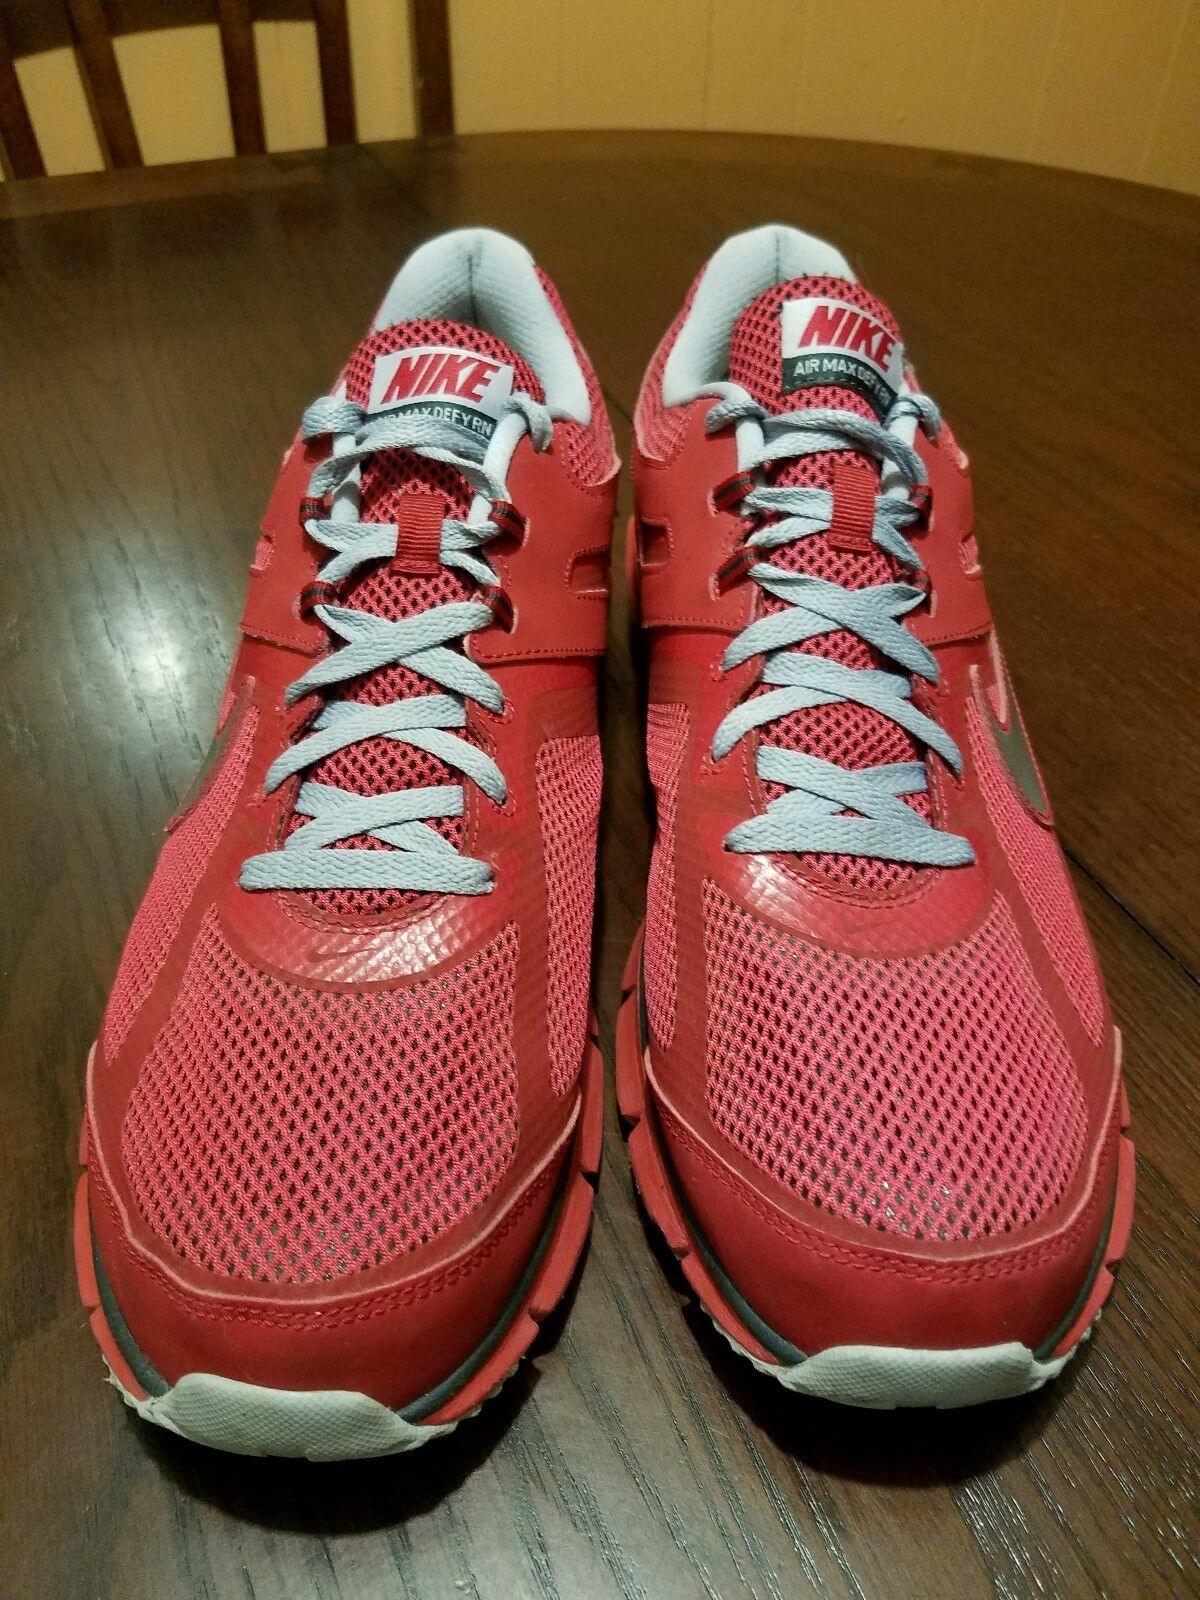 NIKE Air Max Defy RN RN RN Red Running Athletic Sneakers Size 15 599343-600 5f911a